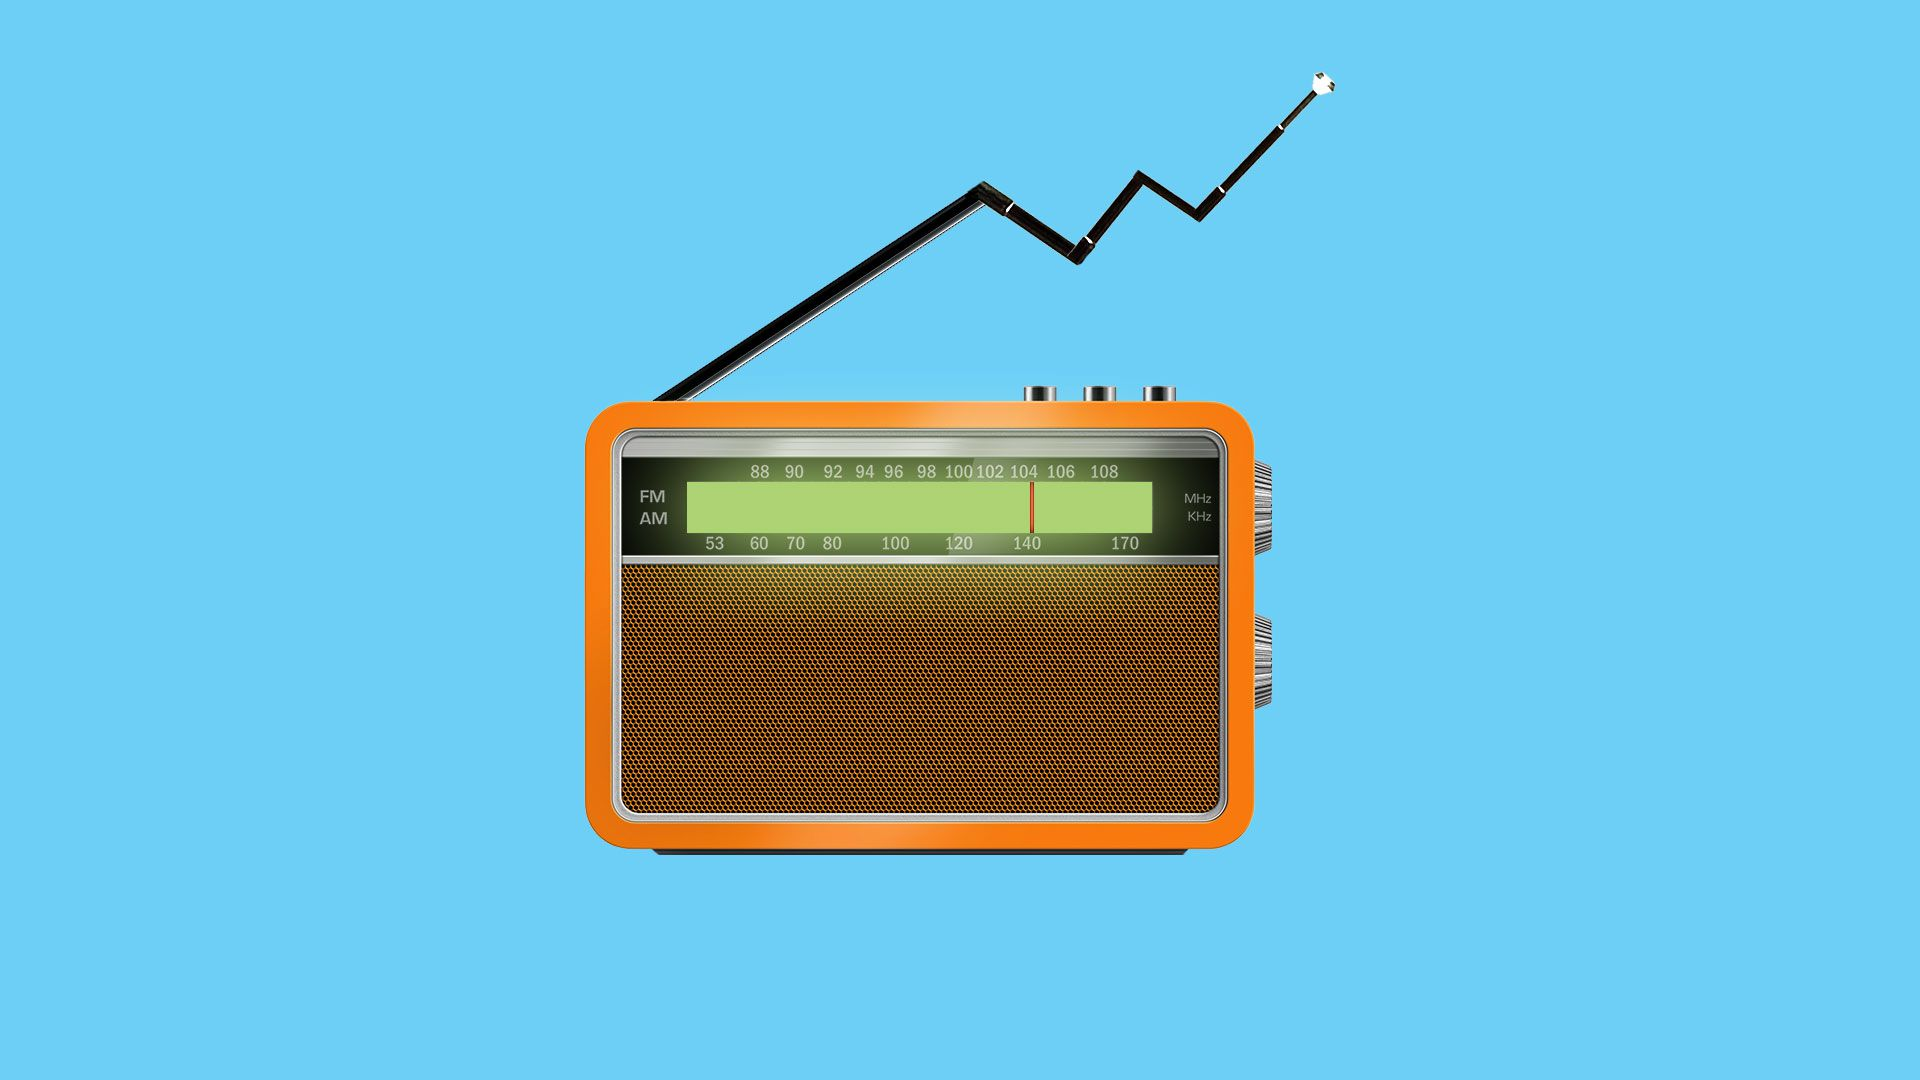 Illustration of a radio with its antenna in the formation of an upward trending market arrow.